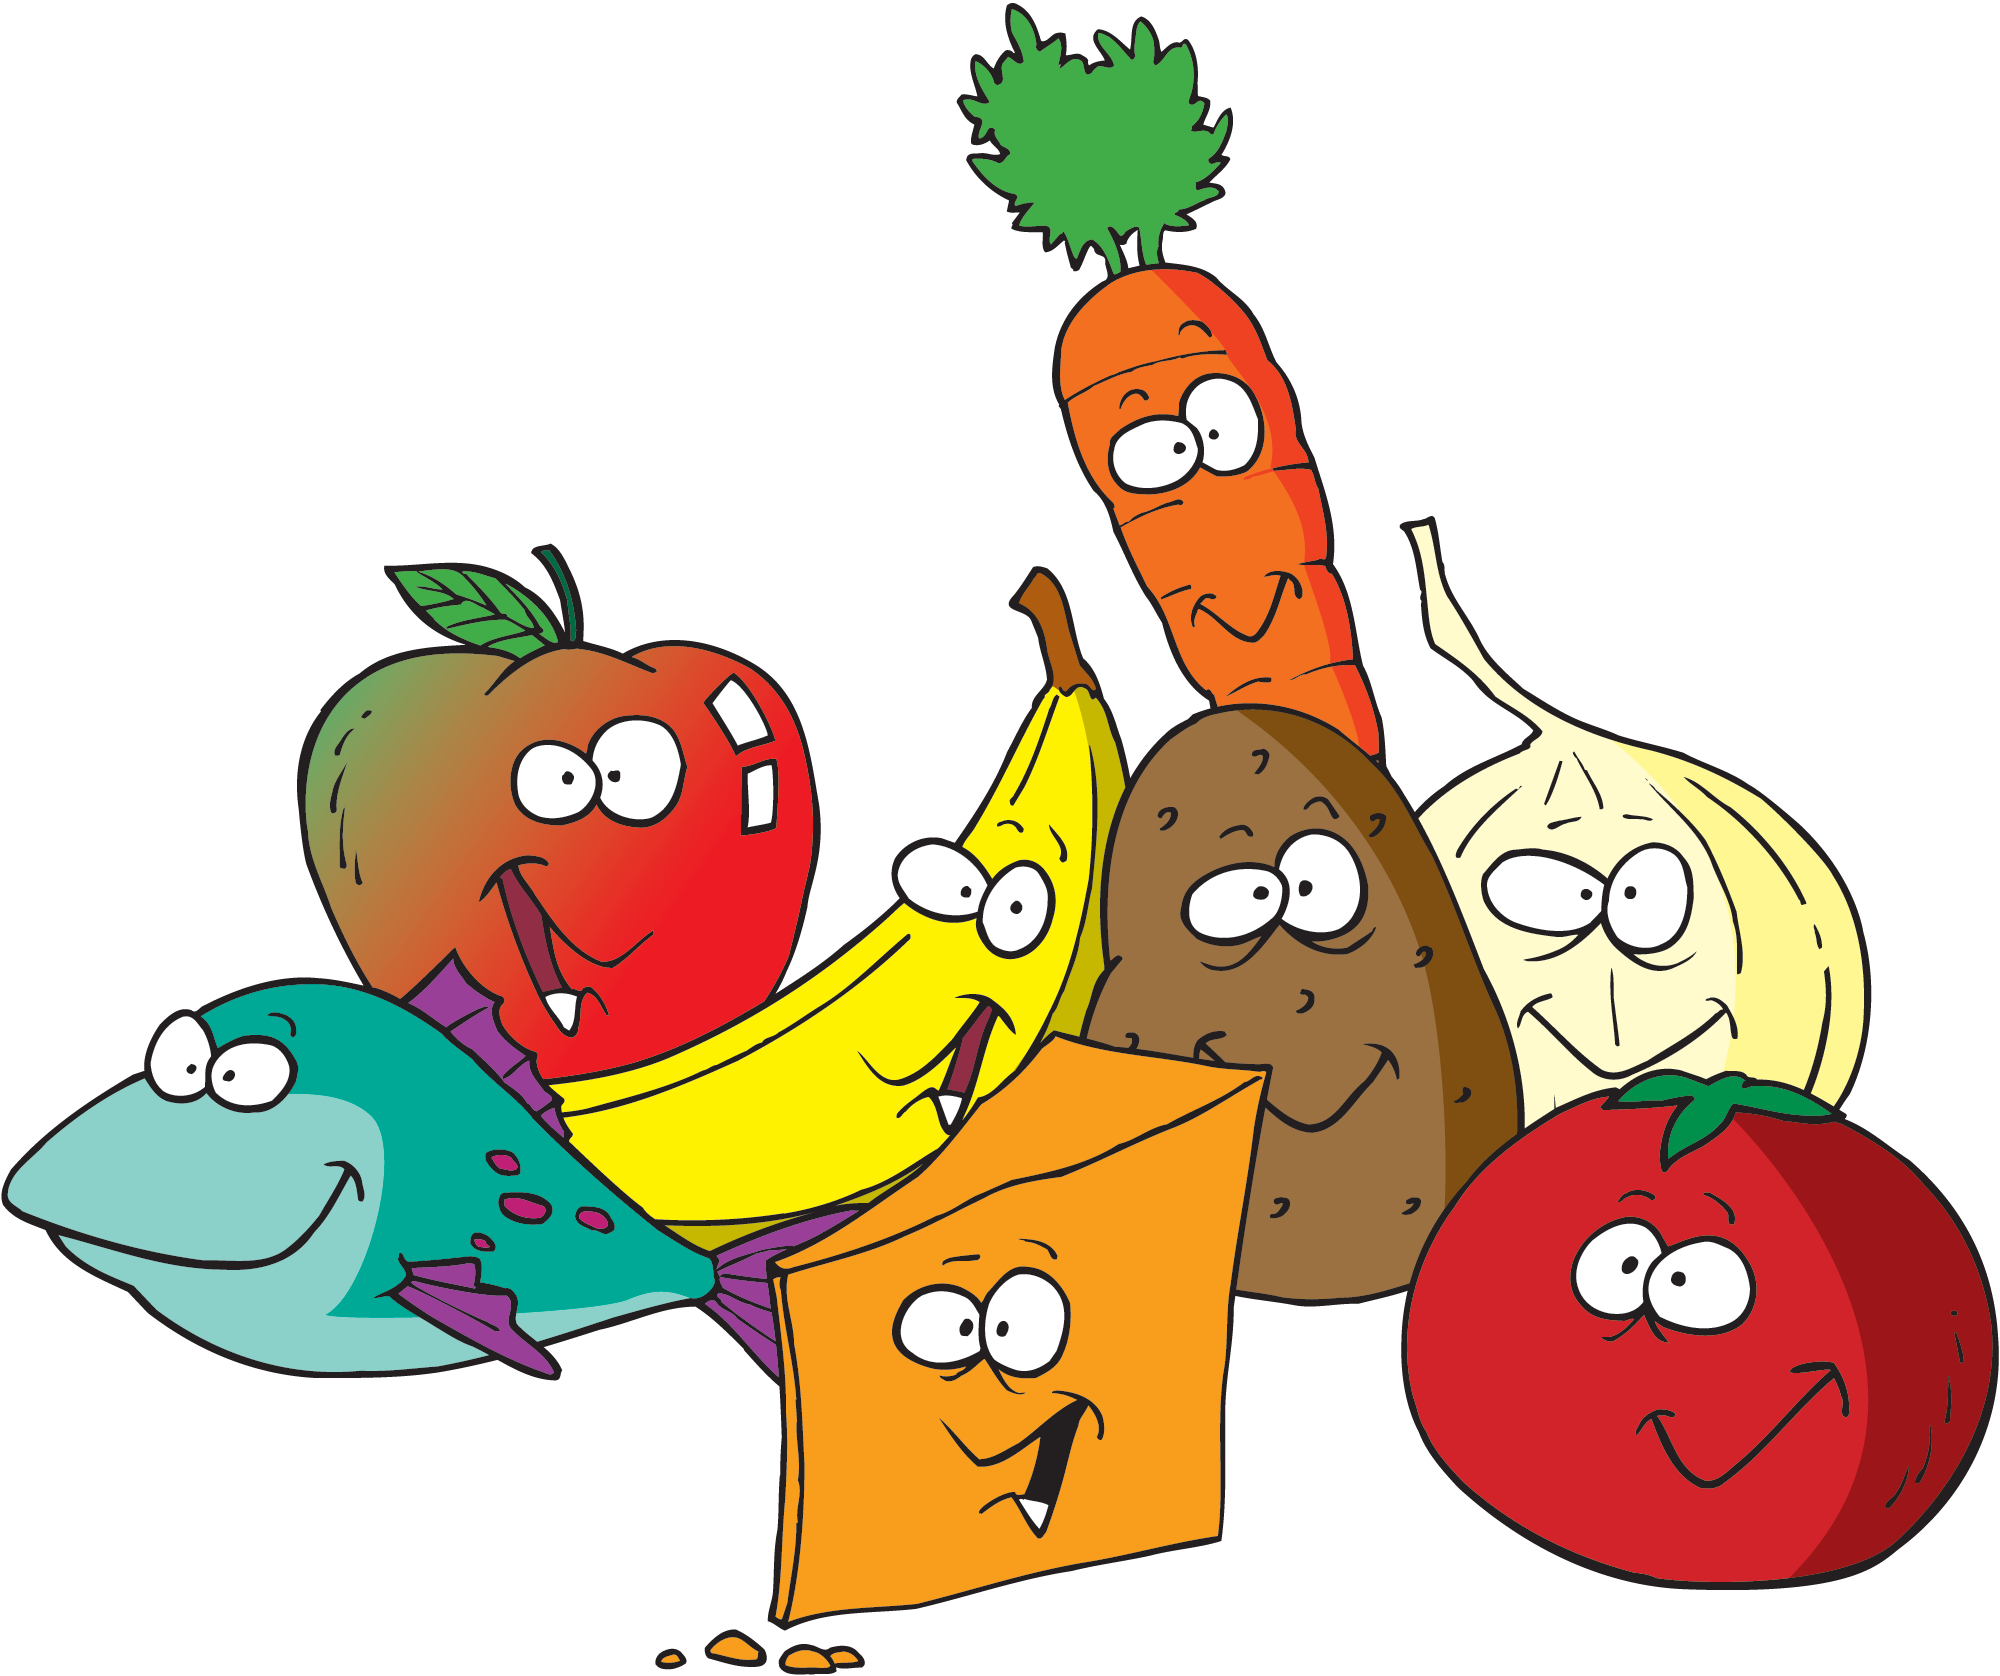 Food great image by. Health clipart healthy diet